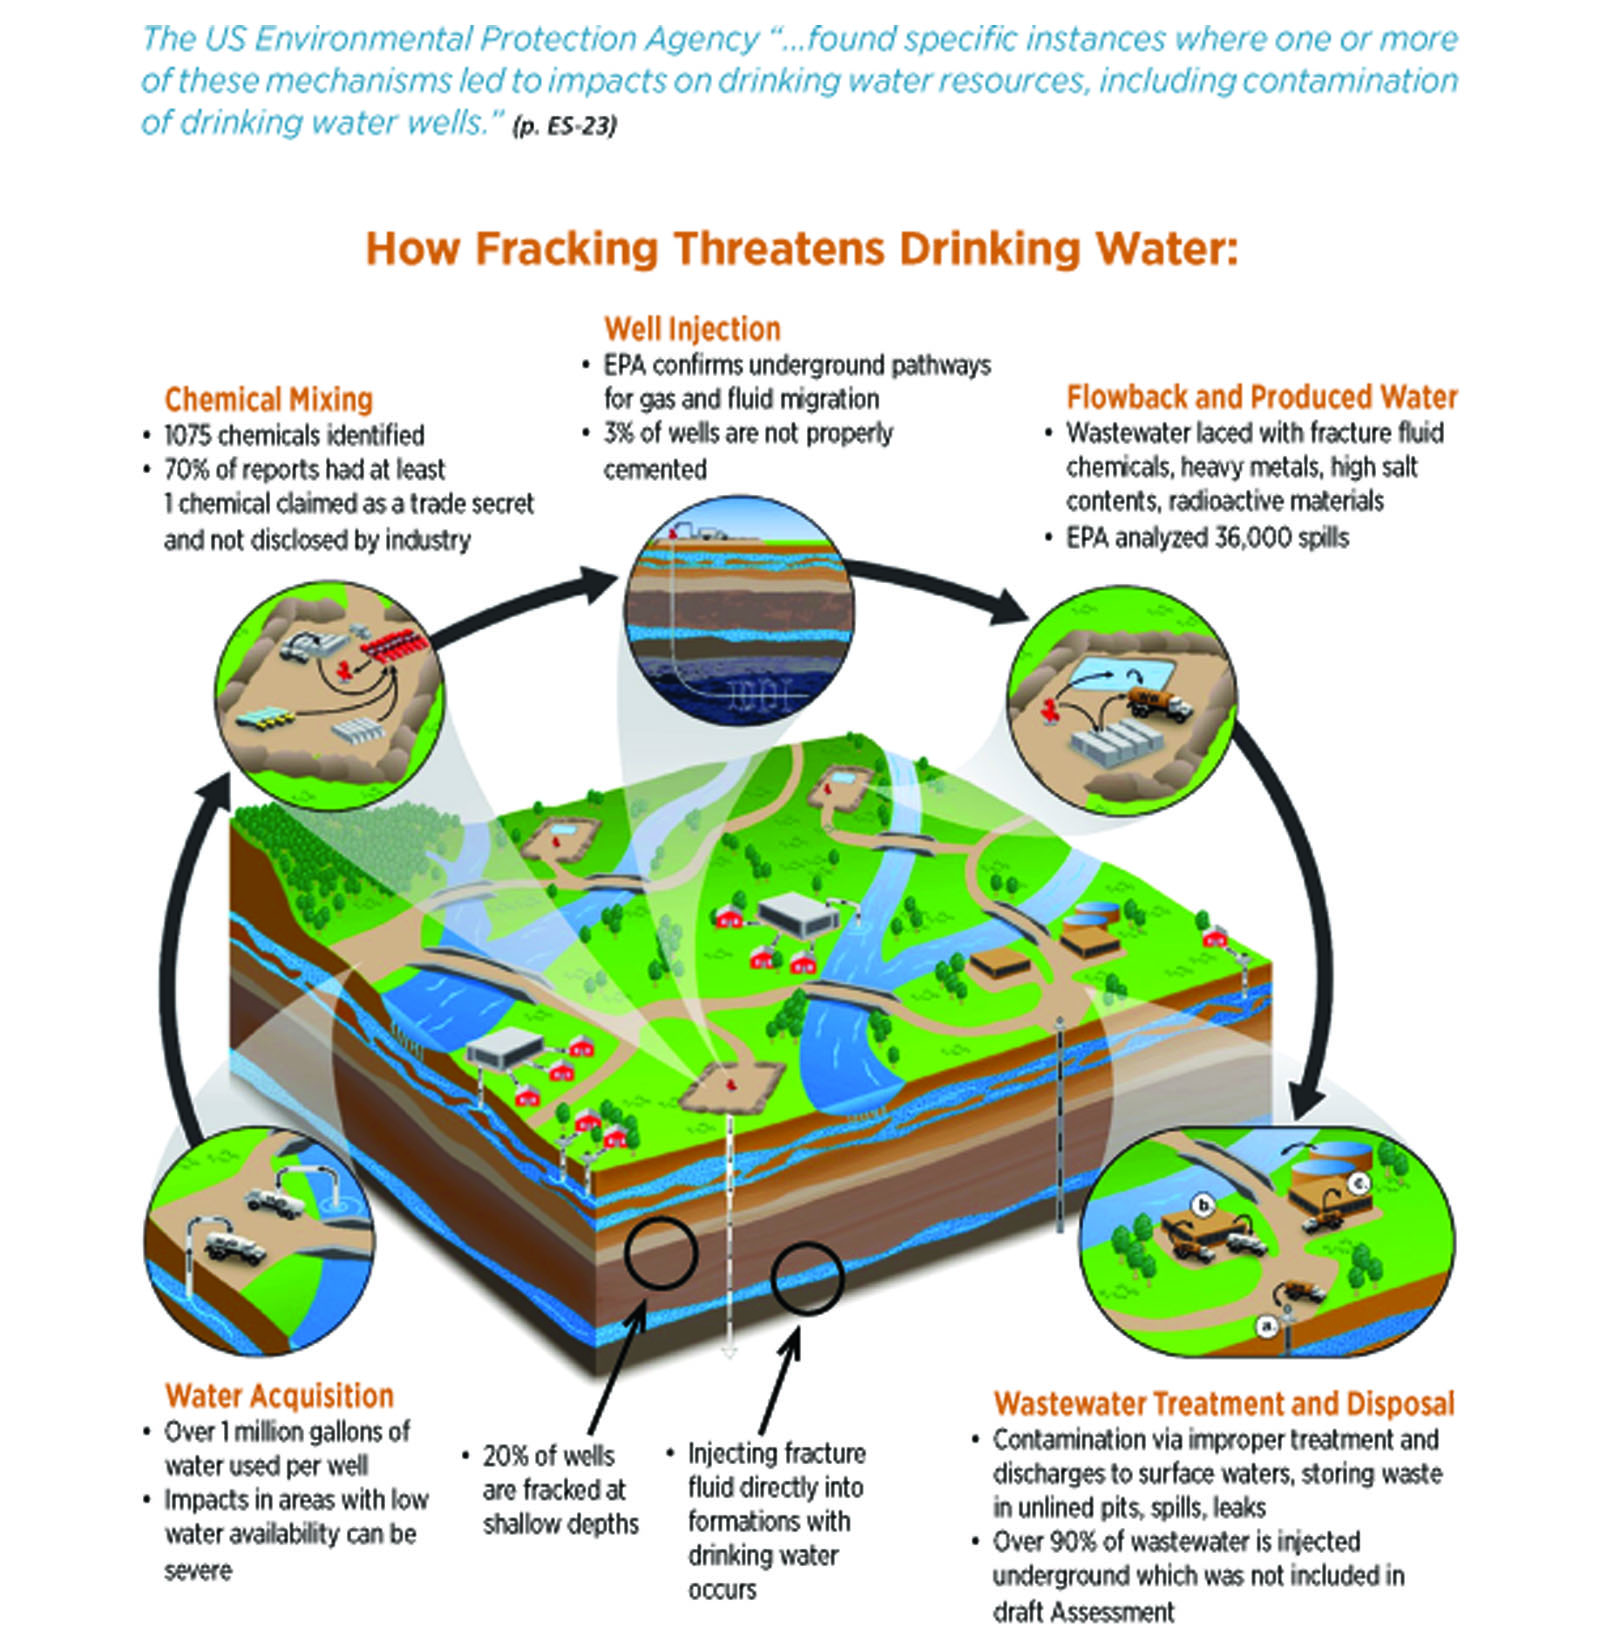 Fracking Threatens Drinking Water - Graphic